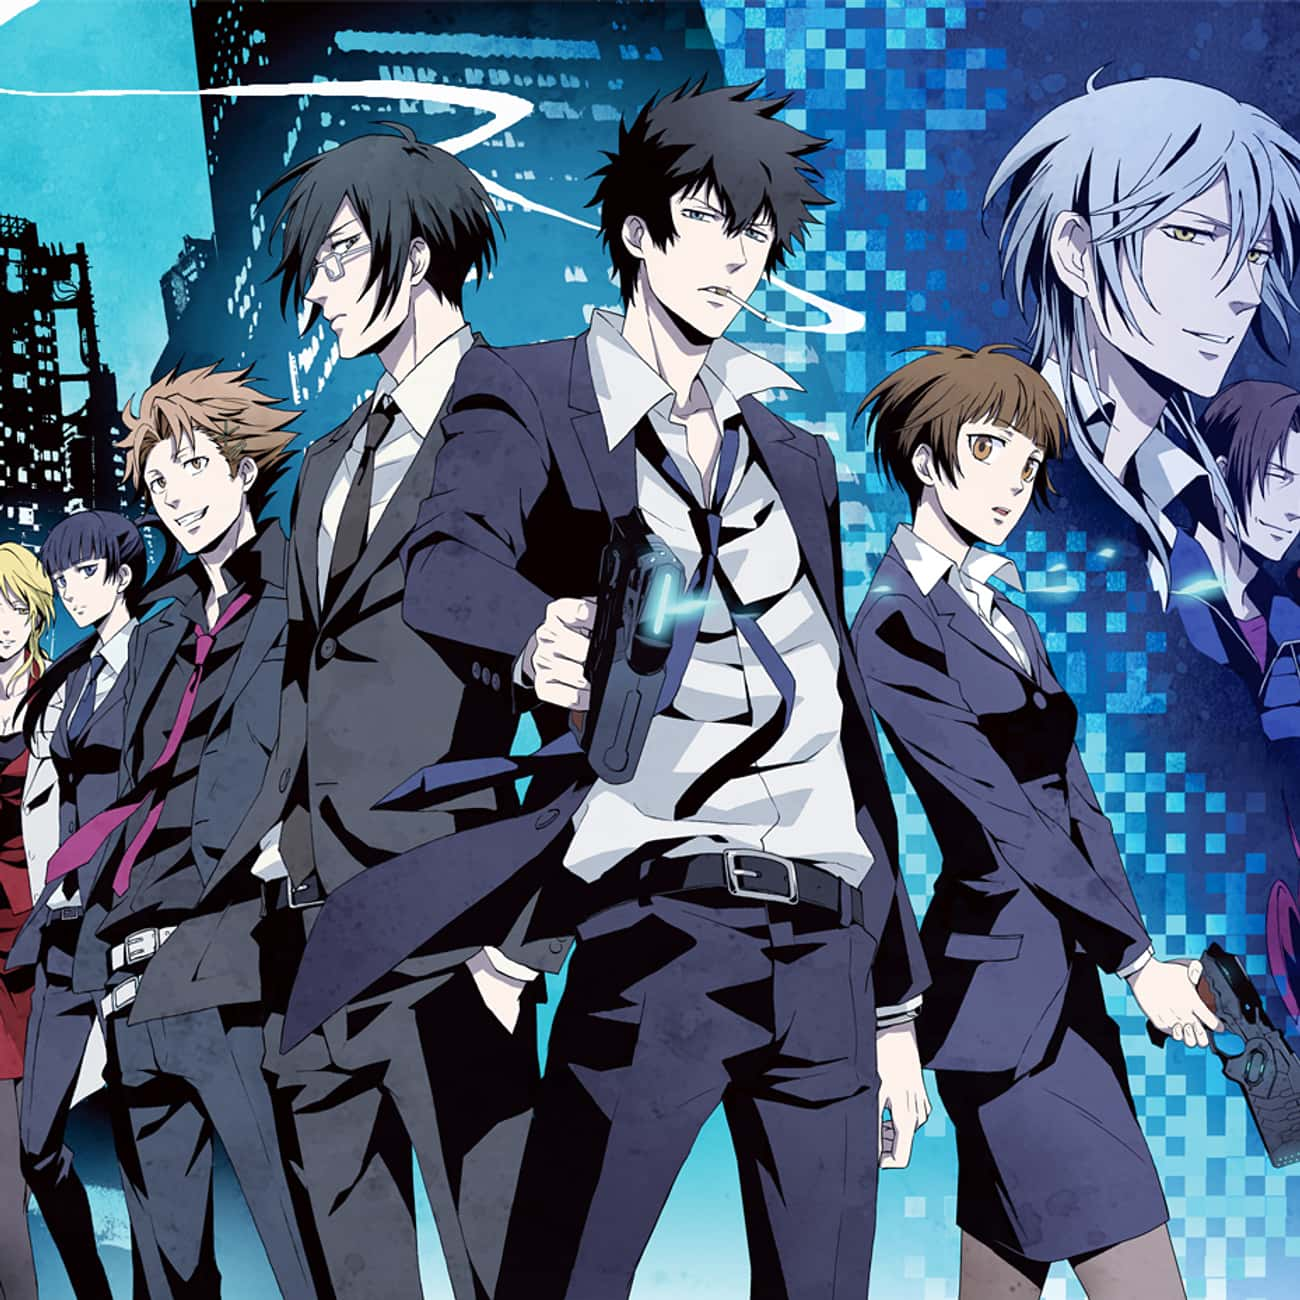 Psycho-Pass is listed (or ranked) 3 on the list What To Watch If You Love 'Death Note'